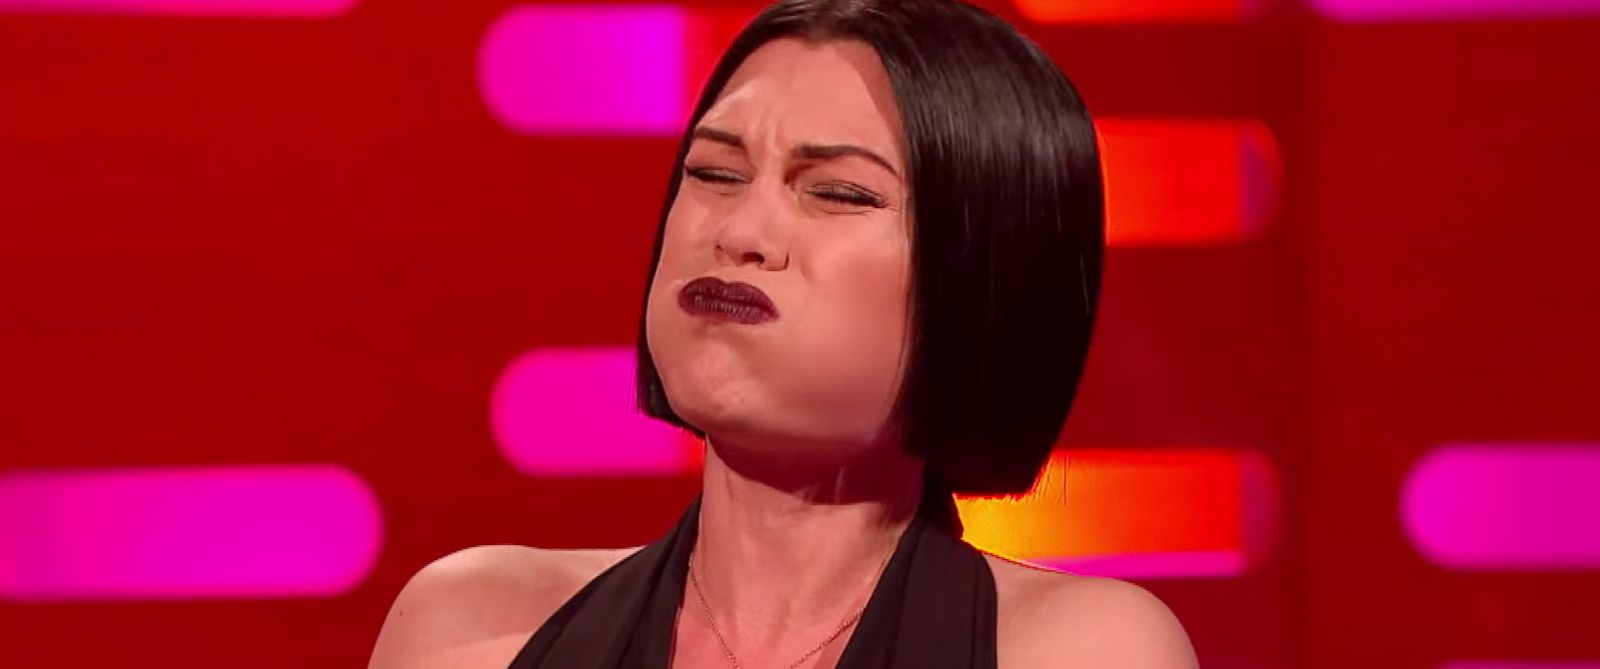 "PHOTO: Singer Jessie J sings with her mouth closed on ""The Graham Norton Show"" in a video posted to the BBCs official YouTube account on Jan. 16, 2015."